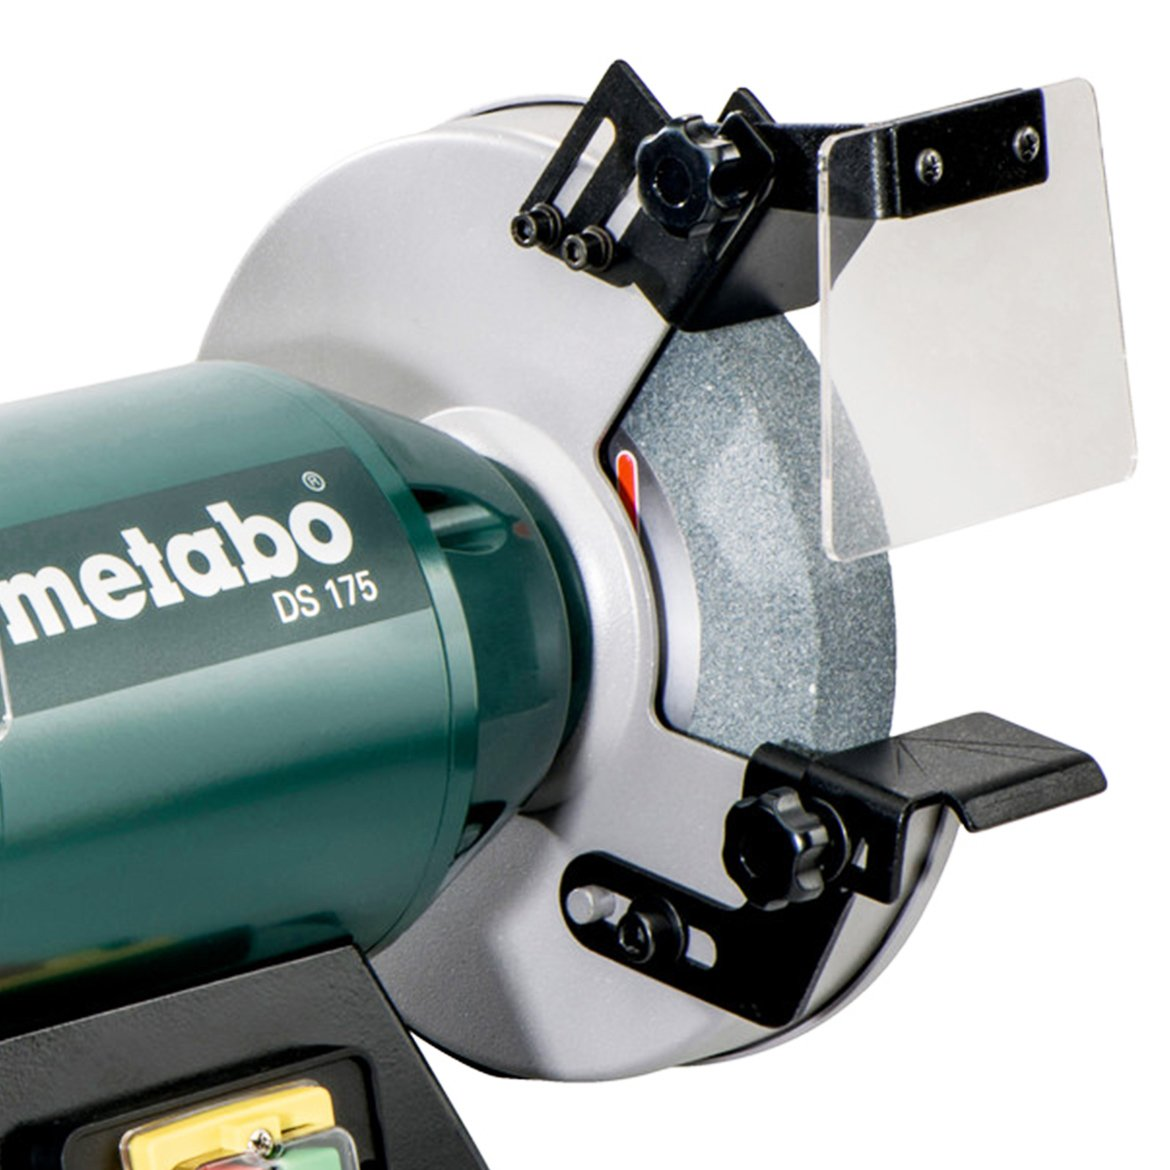 Metabo DS 175 7-Inch Bench Grinder - Power Bench Grinders - Amazon.com